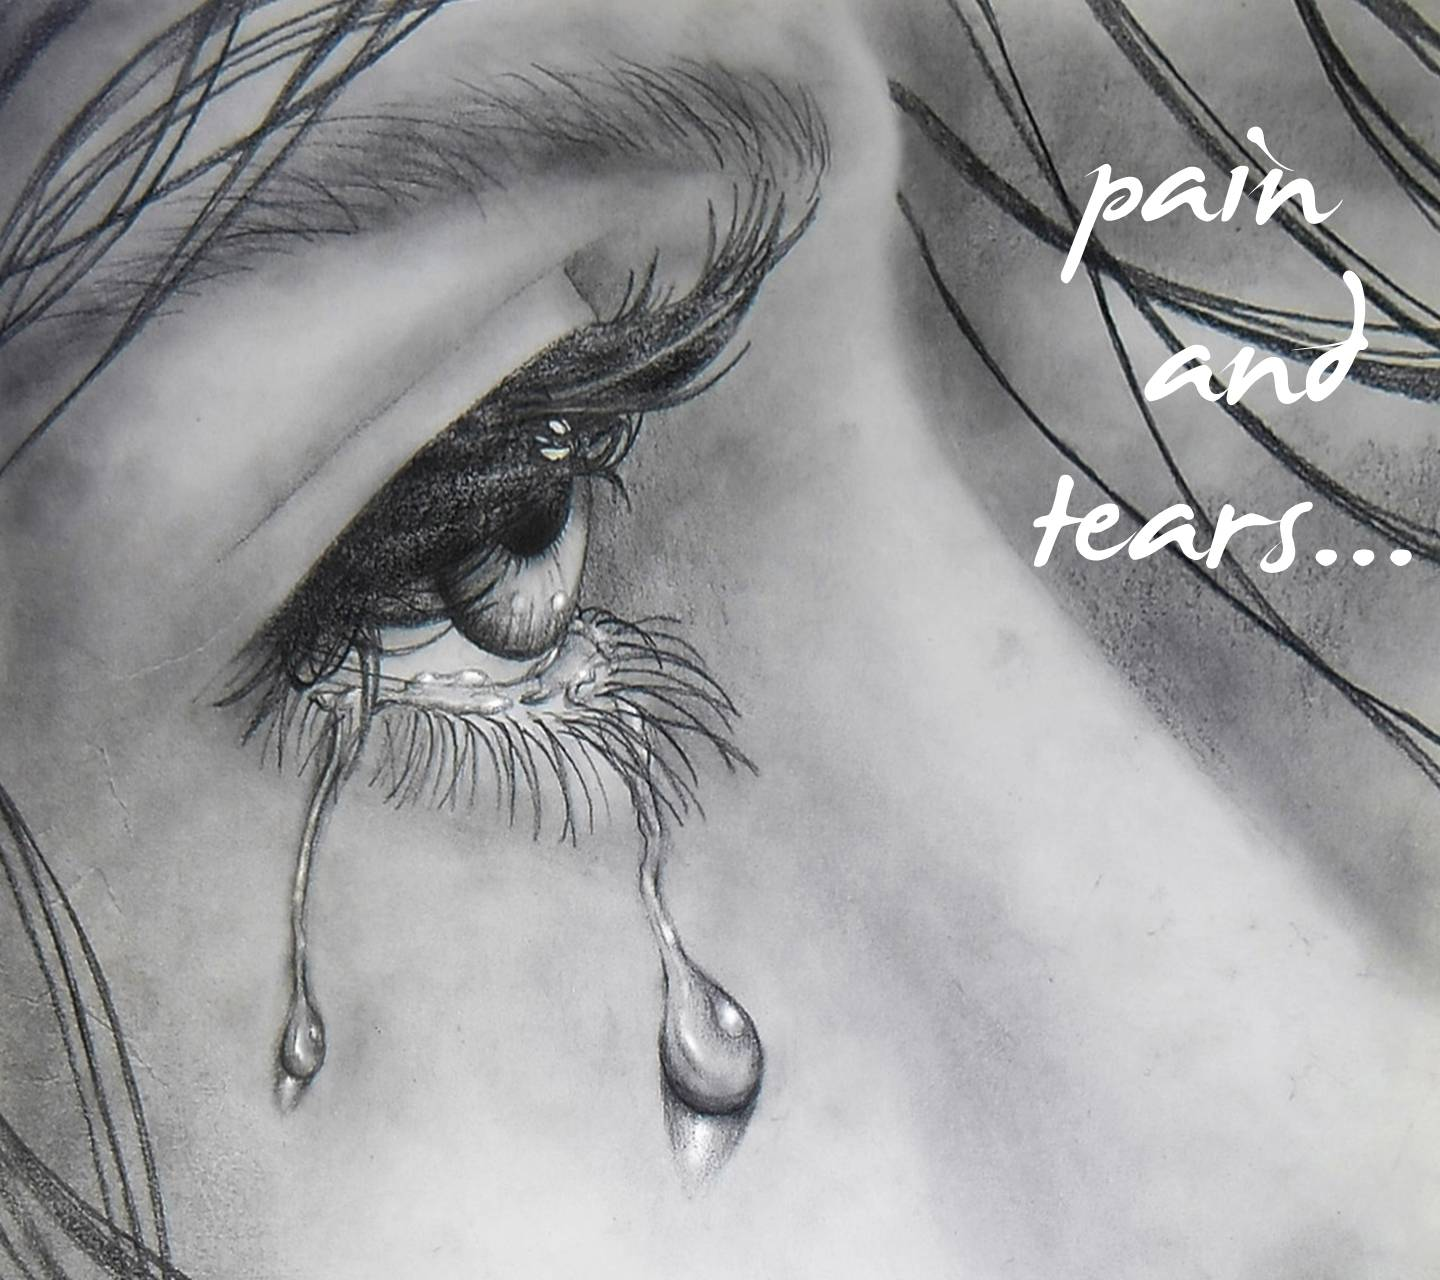 1440x1280 Pain And Tears Wallpaper by PerfumeVanilla - 64 - Free on ZEDGE™